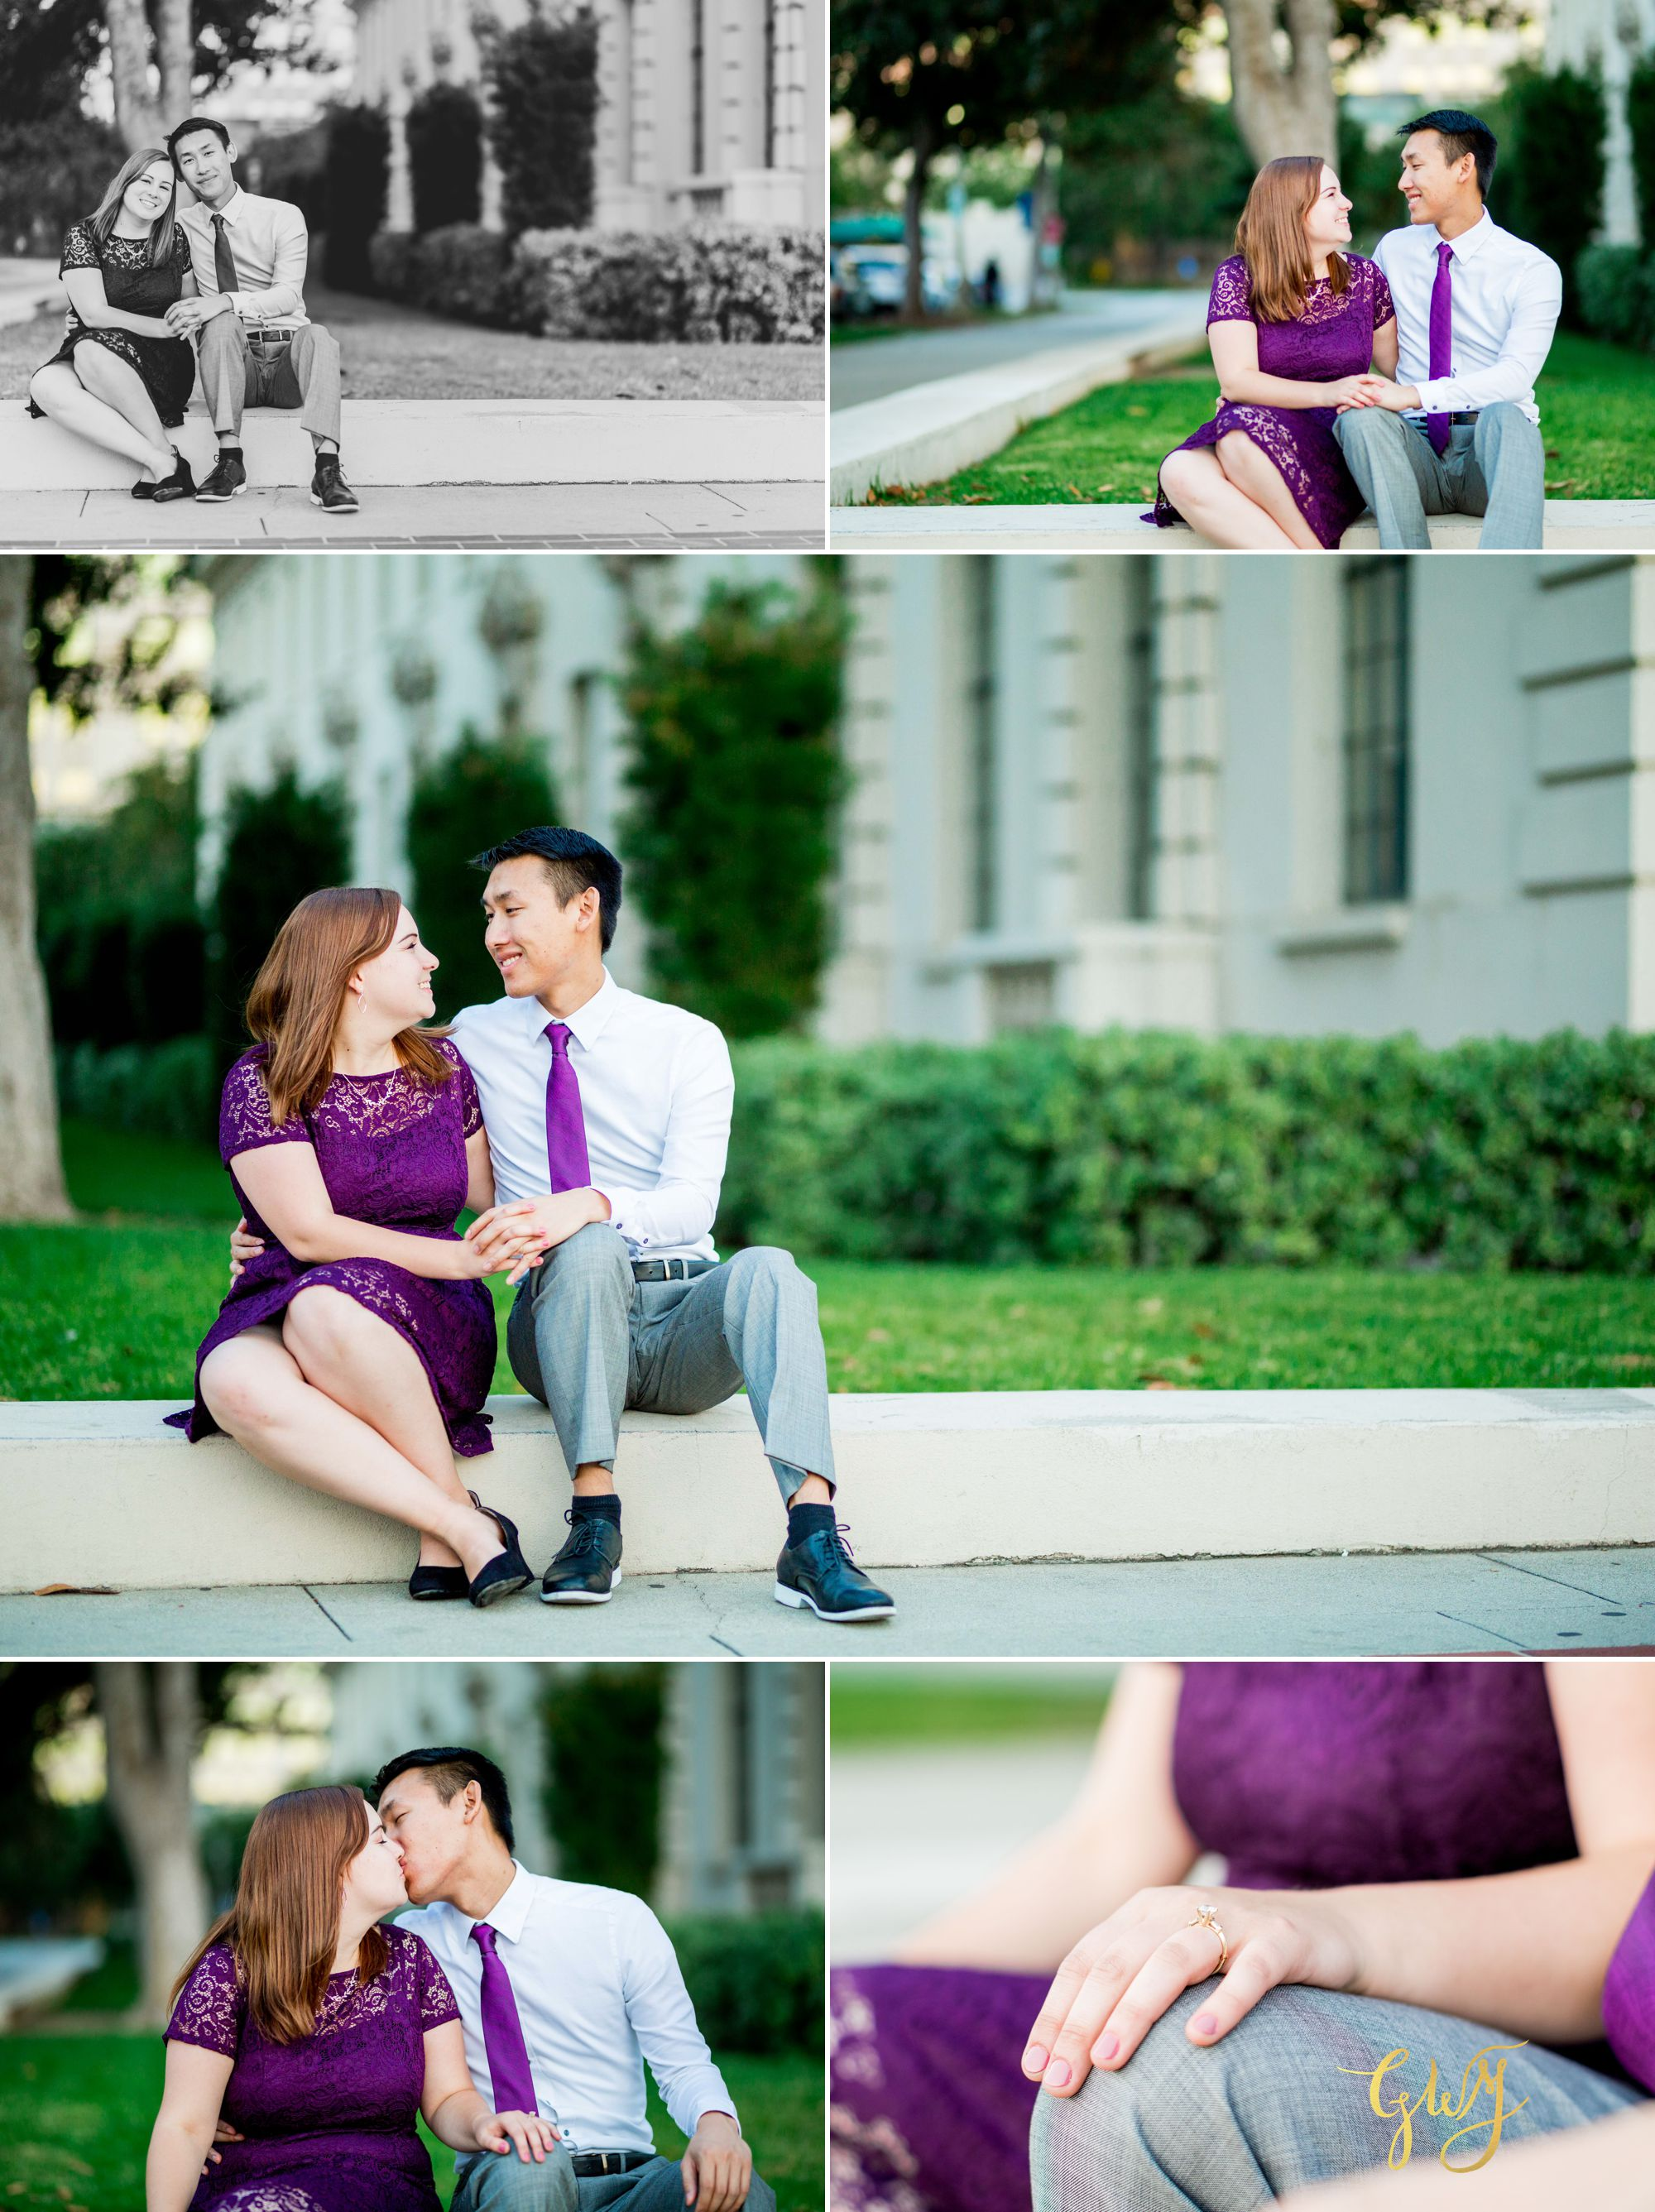 Keira + Michael Los Angeles Arboretum Pasadena City Hall Engagement 14.jpg